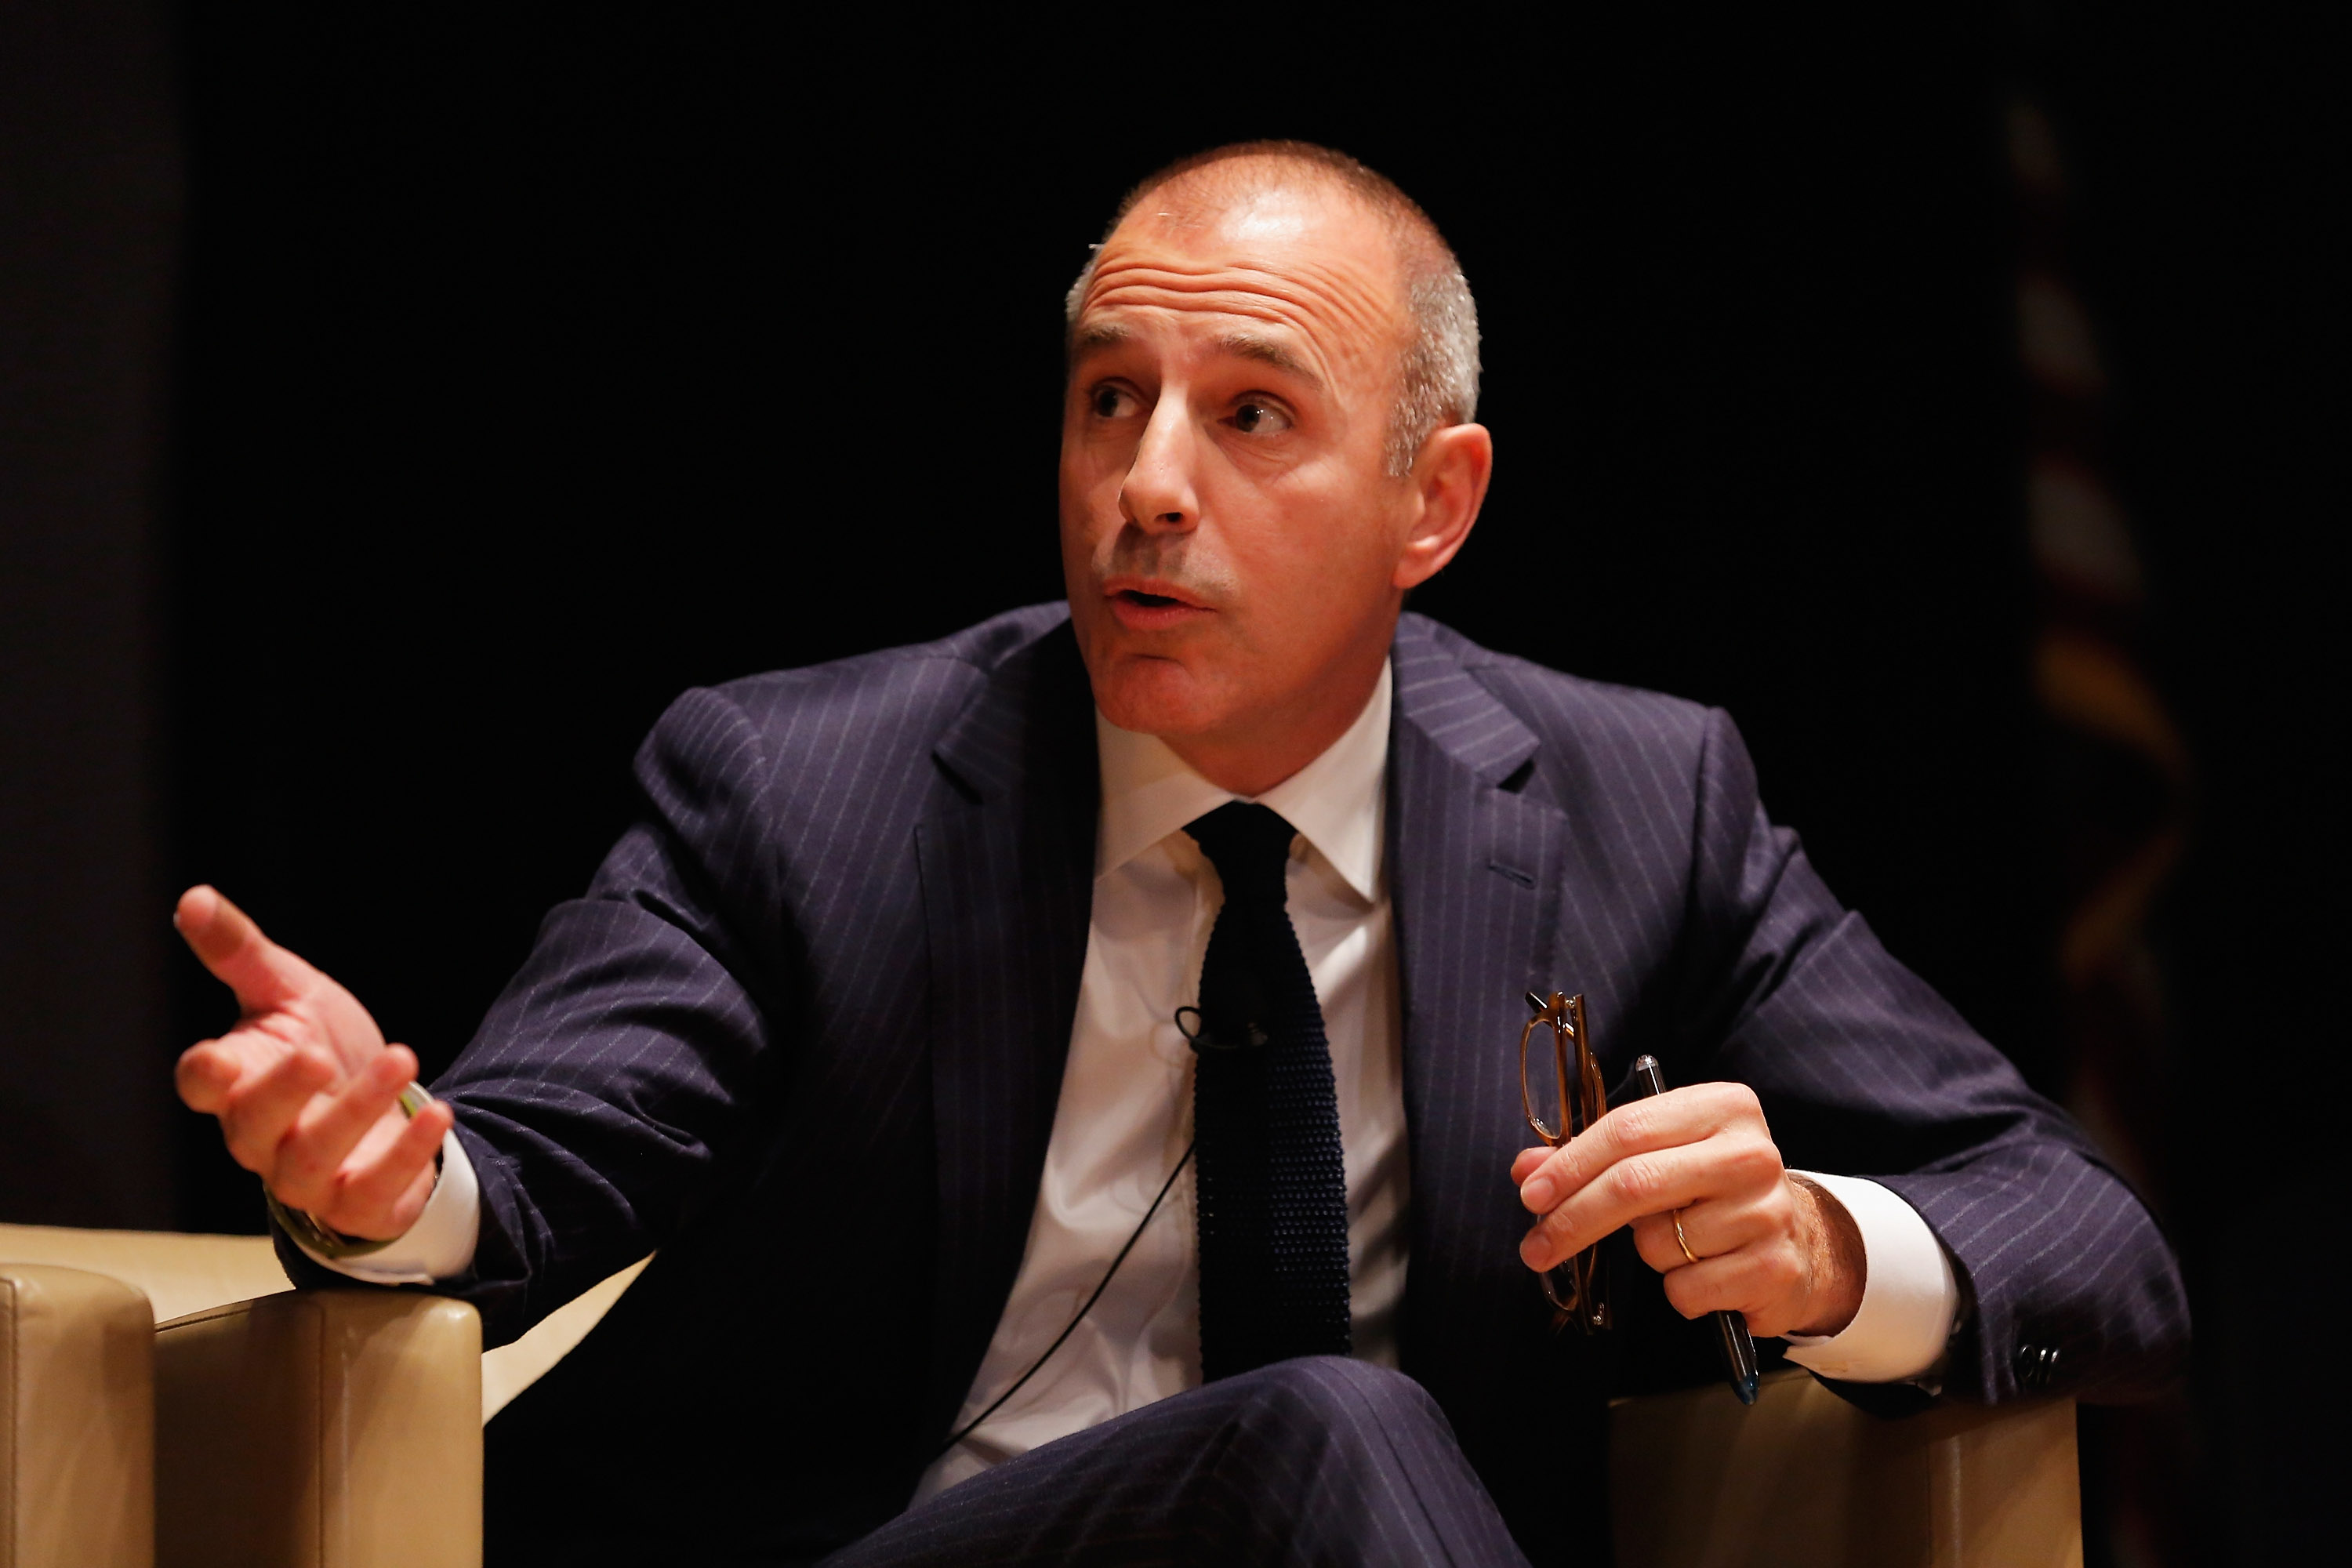 Annal Rape matt lauer and the problems with his 'consensual sex